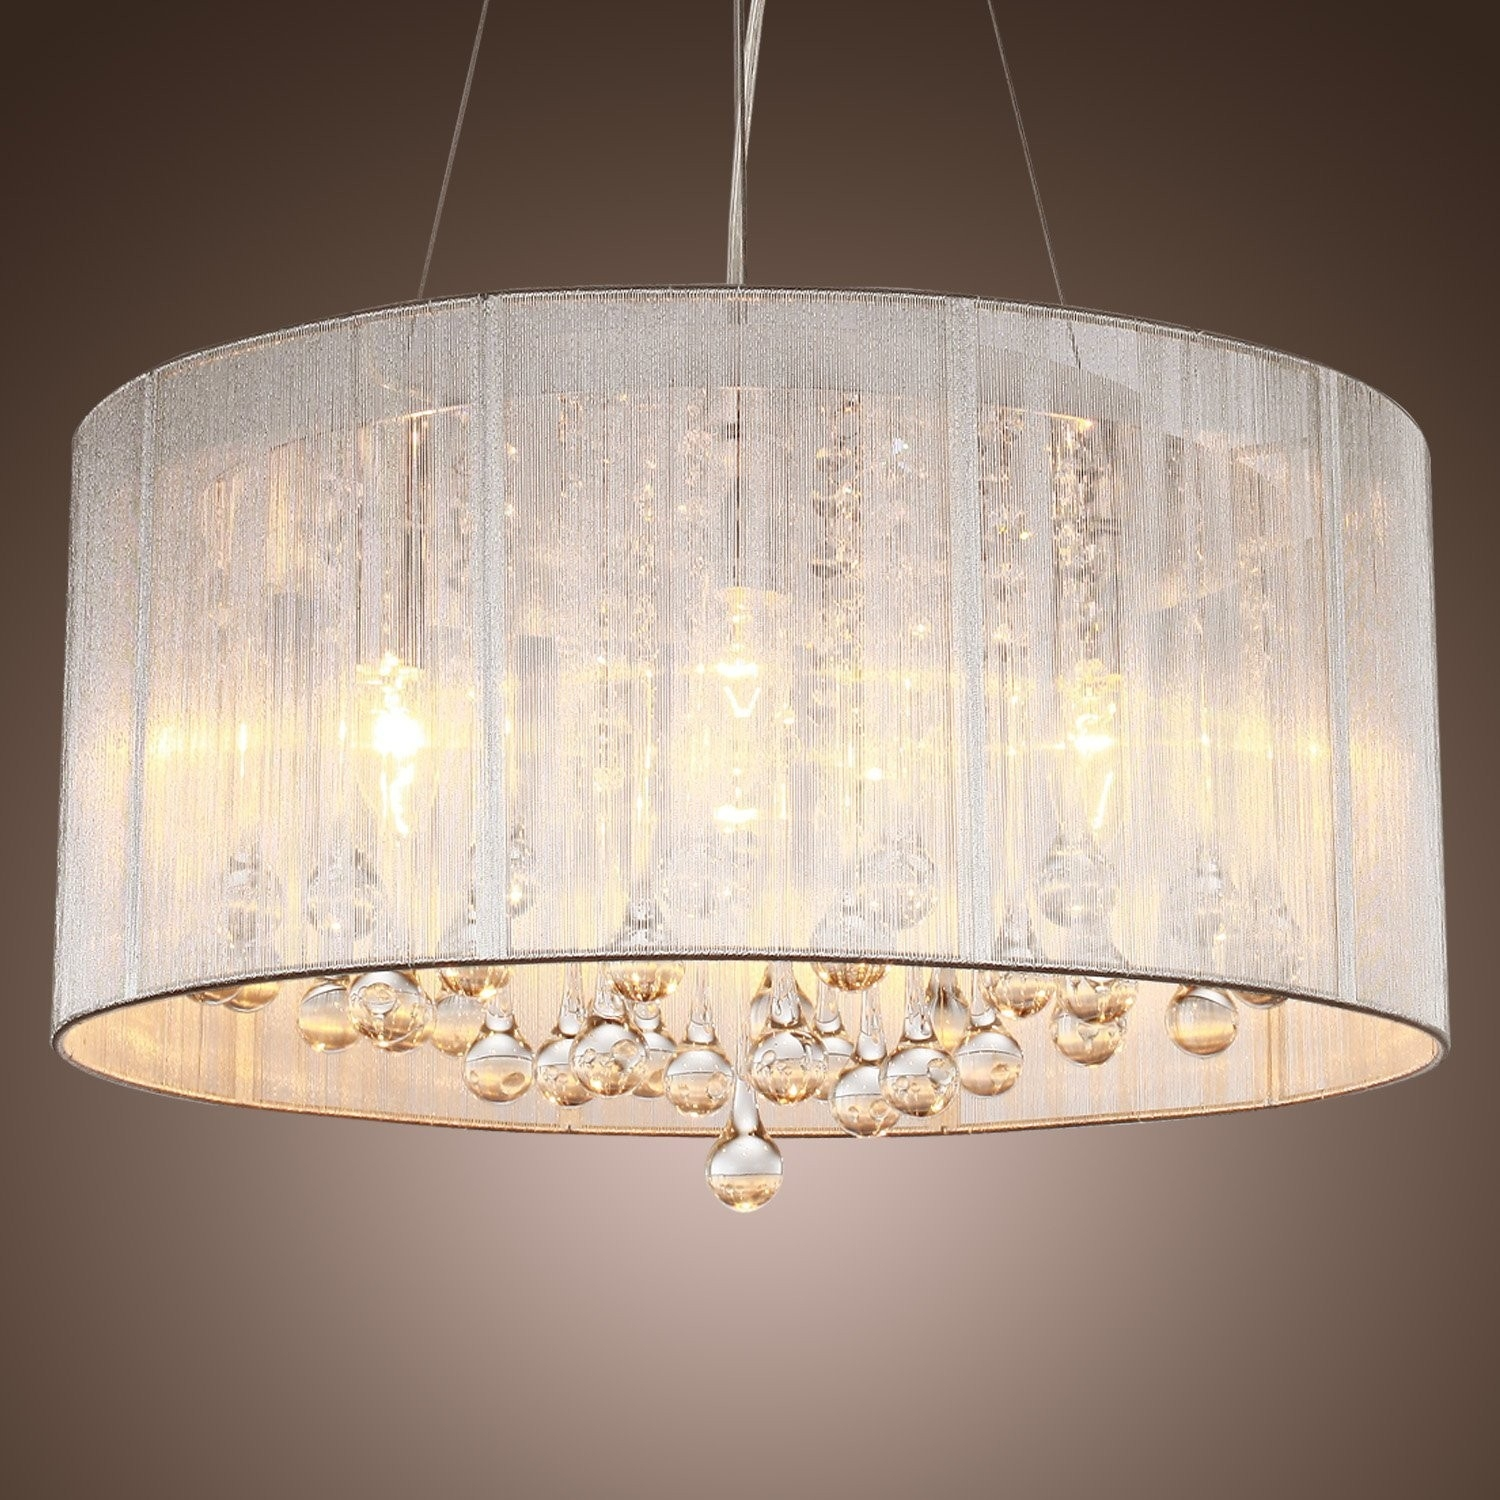 Modern Crystal Pendant Light In Cylinder Shade Drum Style Home In Flush Chandelier Ceiling Lights (Image 23 of 25)